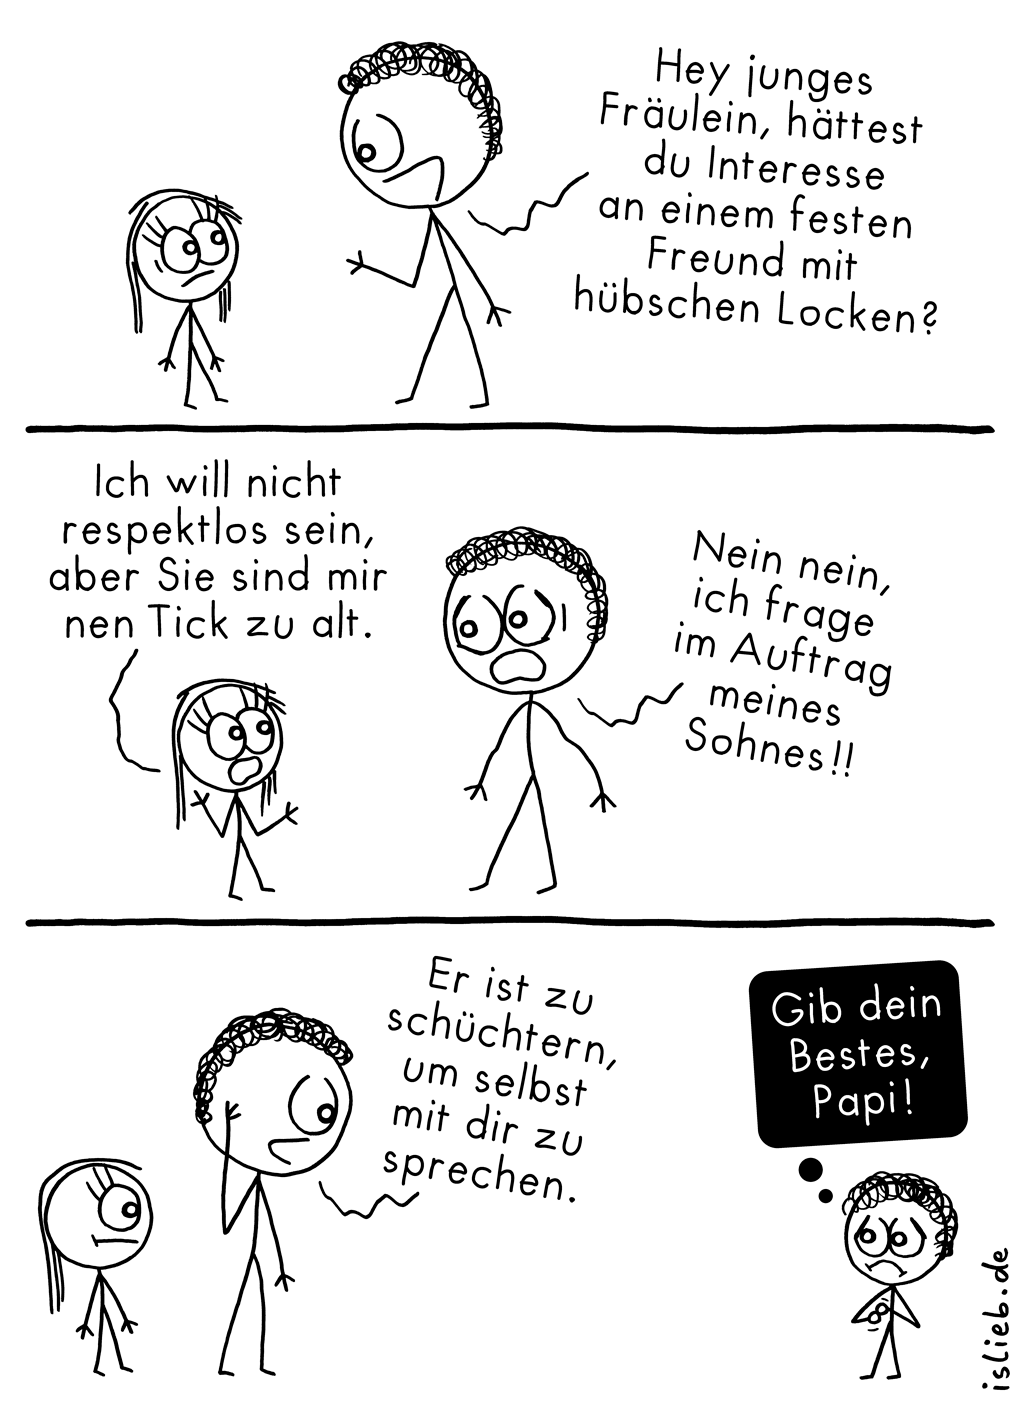 Locken | Strichmännchen-Comic | is lieb?